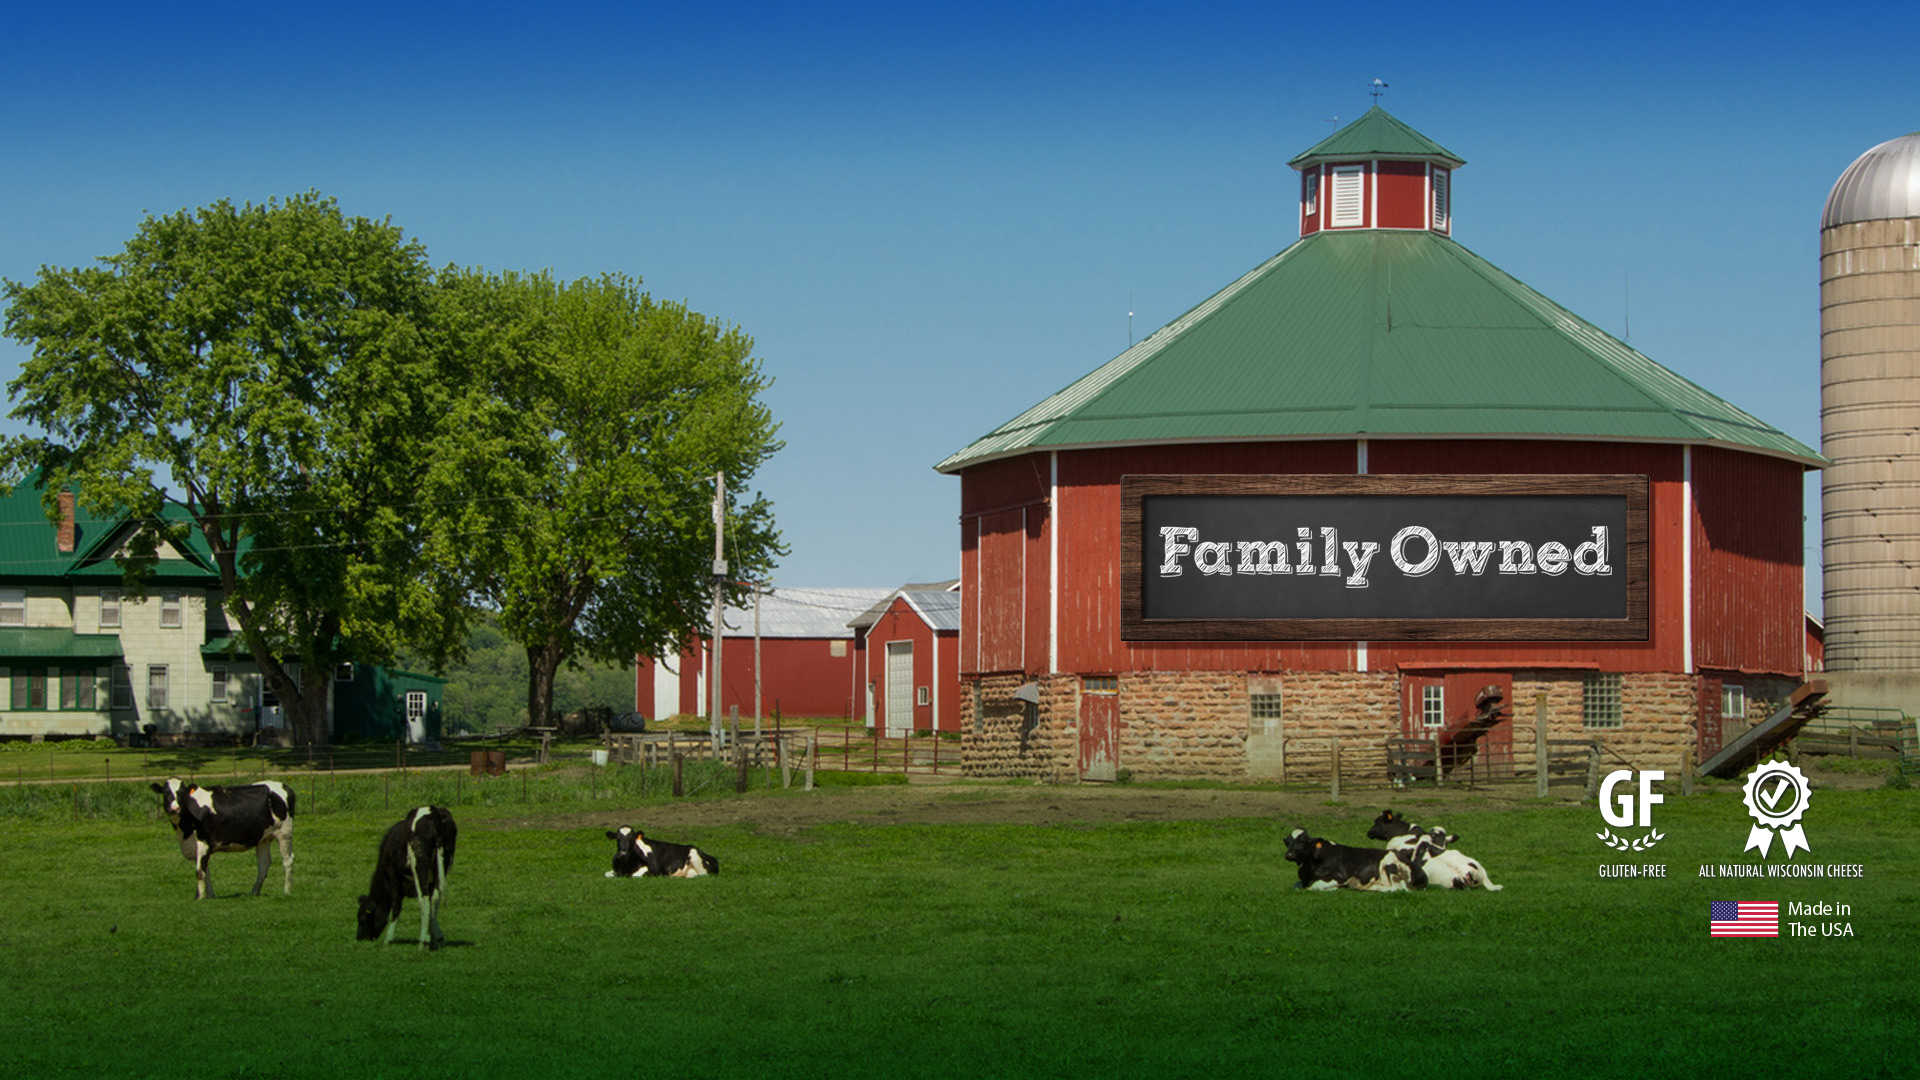 Image of Wisconsin Dairy Farm, Gluten Free, Quality Ribbon and USA Flag, Sign with Family Owned